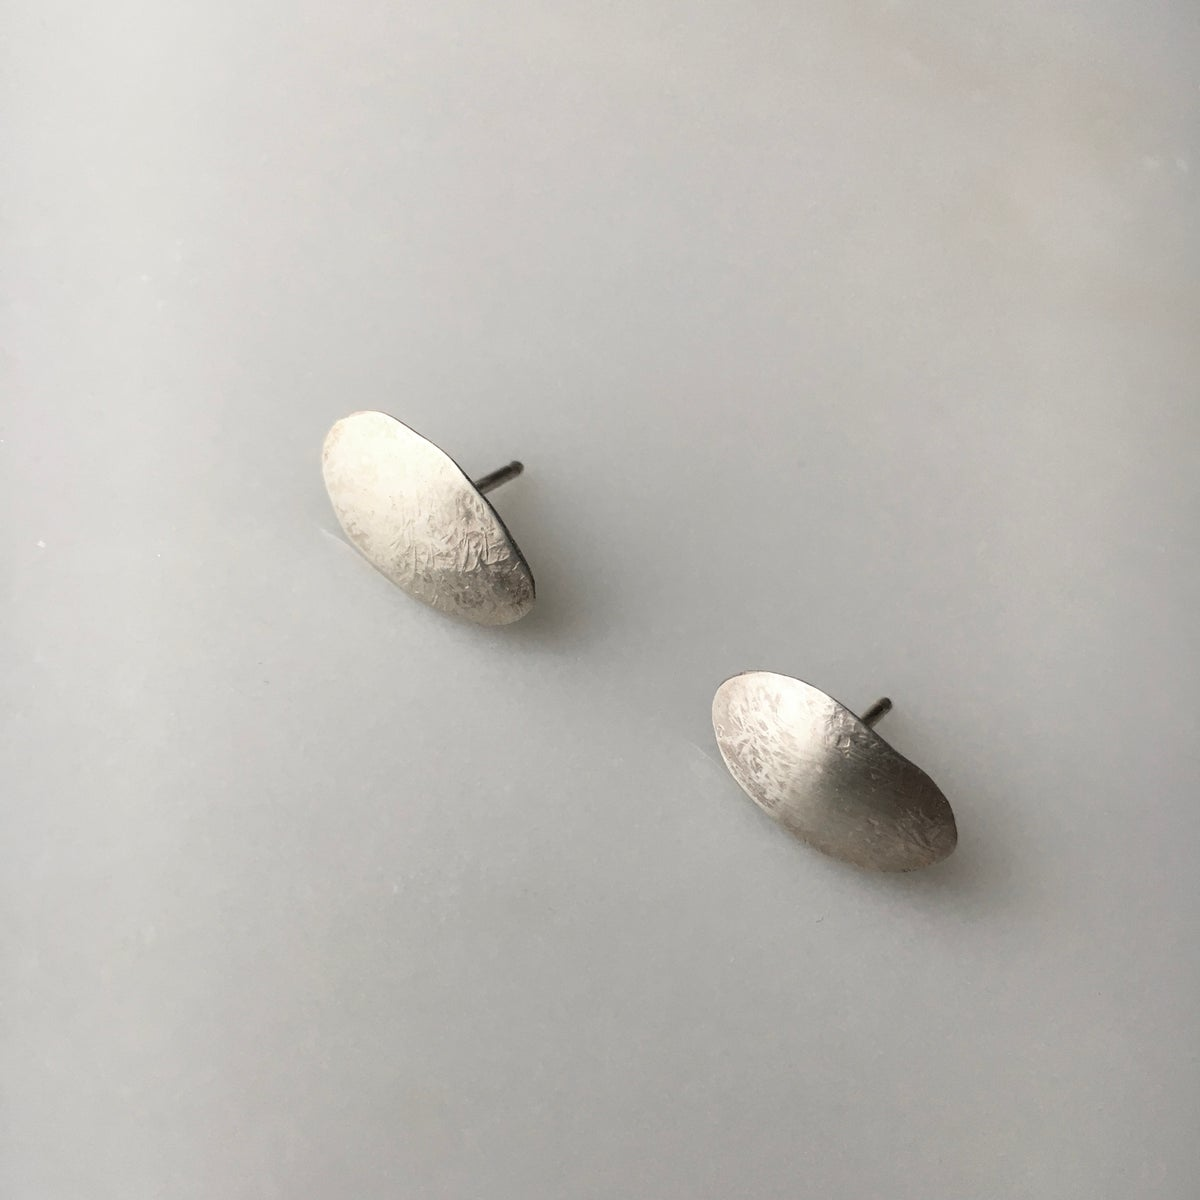 Image of shell earring